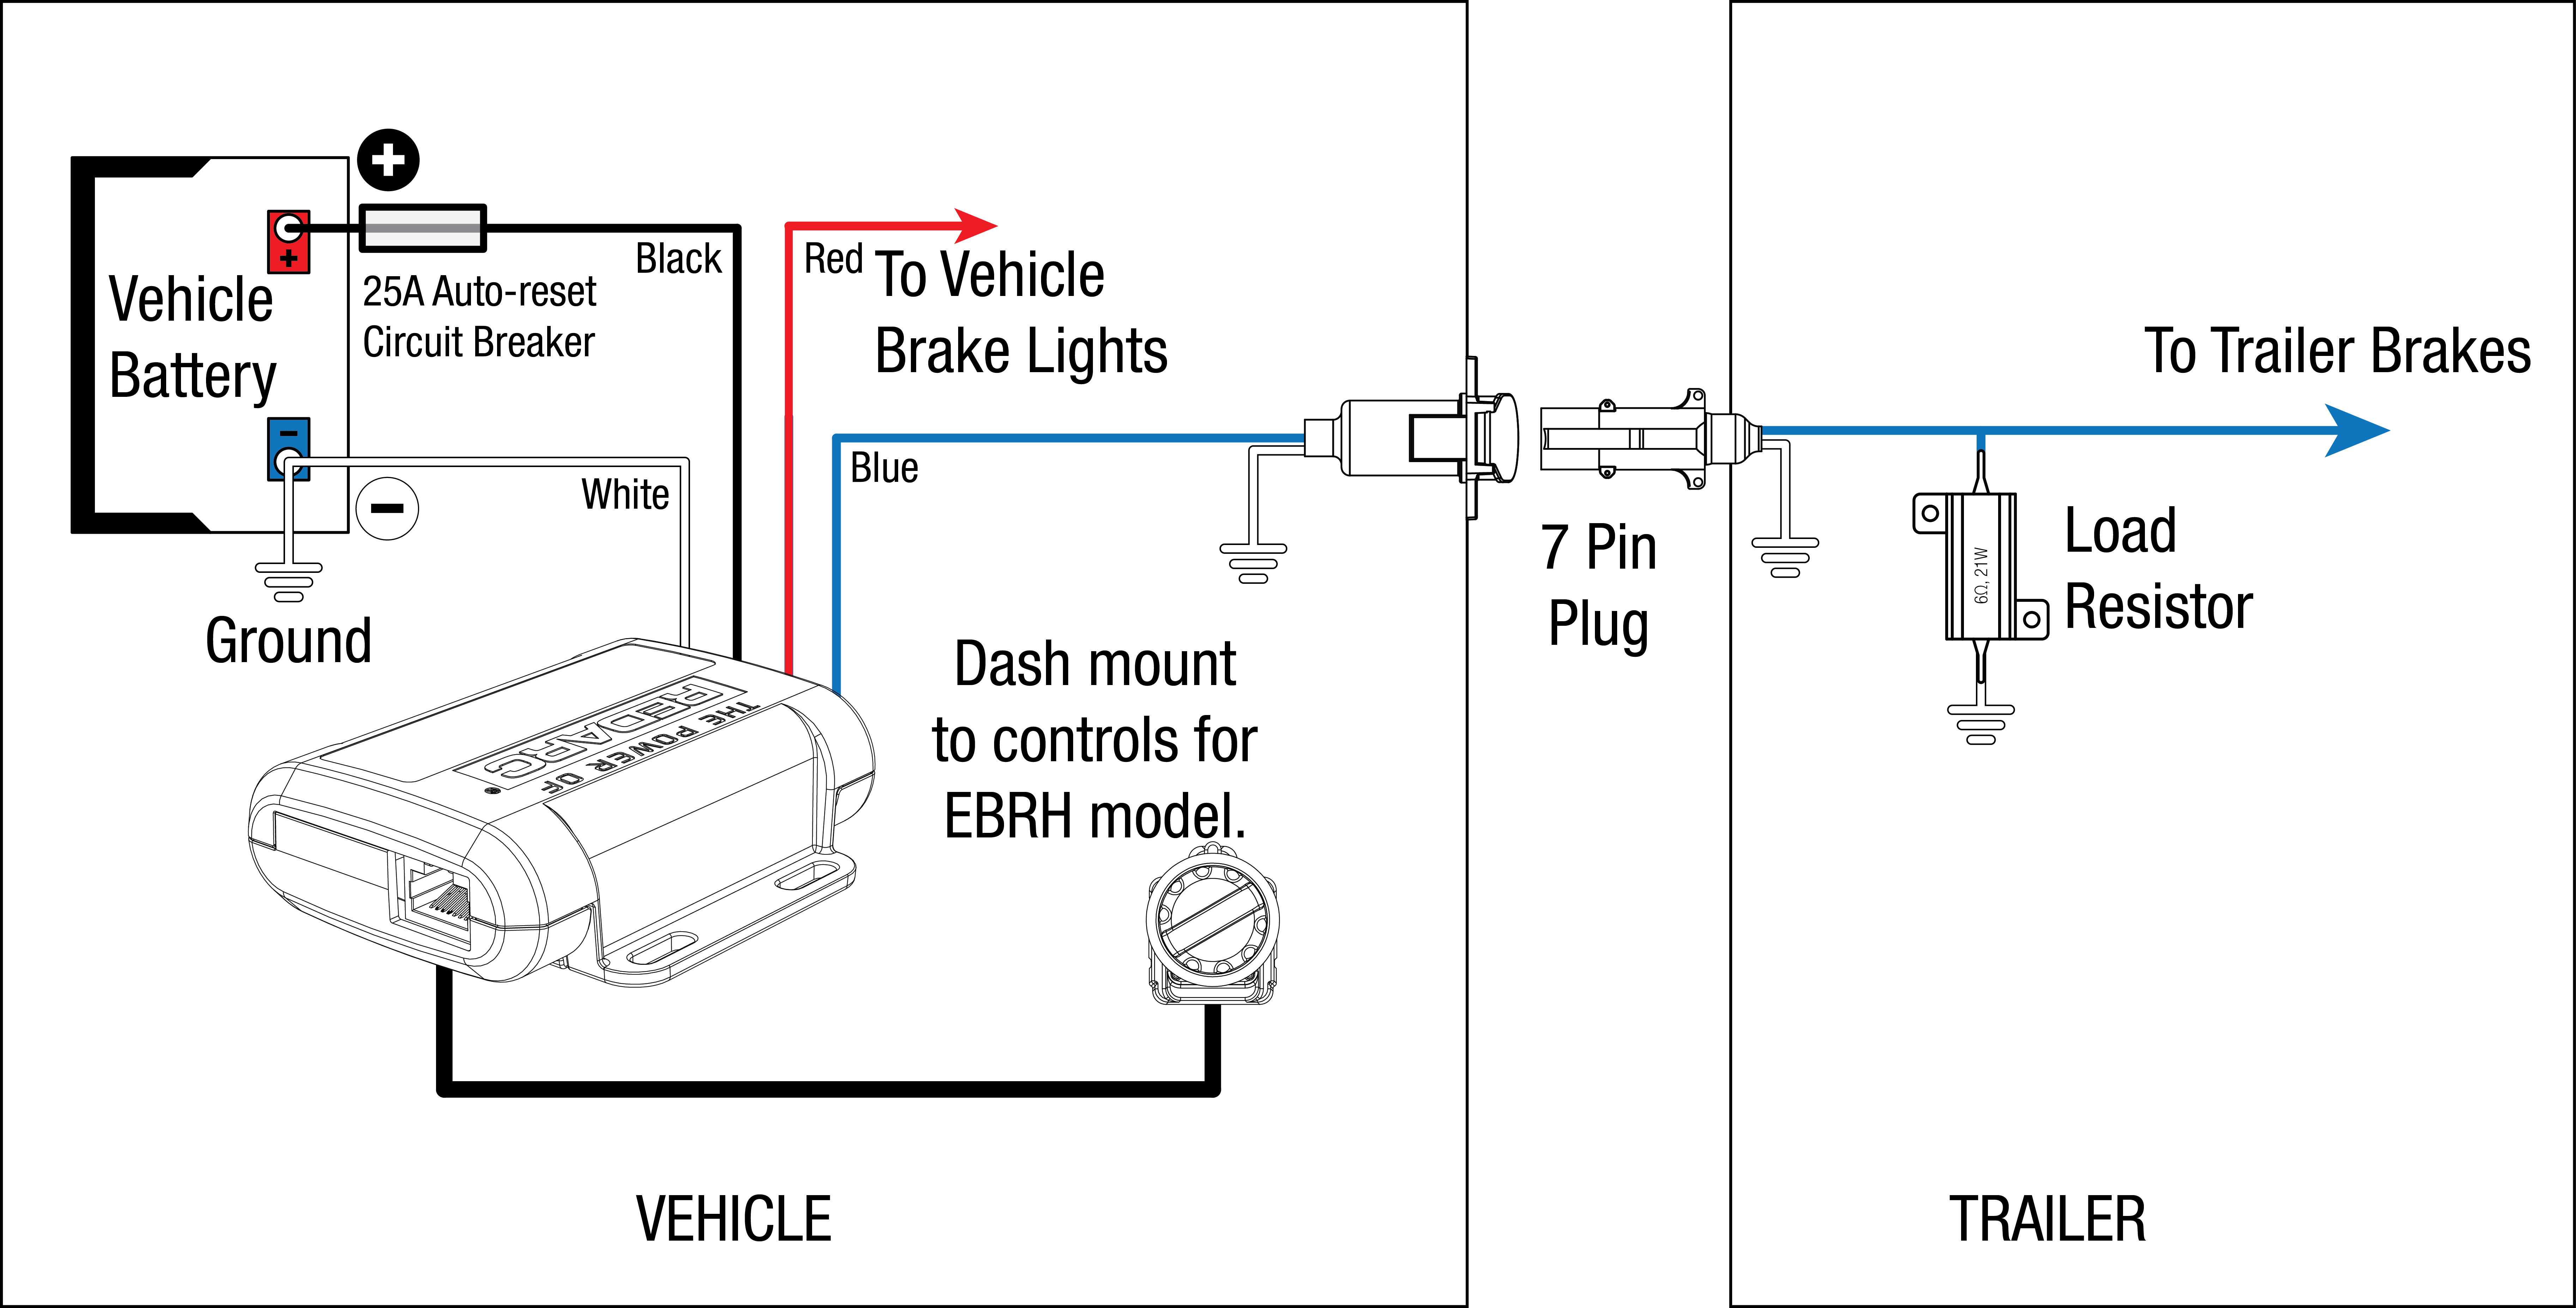 Tow-Pro Electric/hydraulic Braking Systems | Redarc Electronics - Wiring Diagram For A Trailer With Electric Brakes